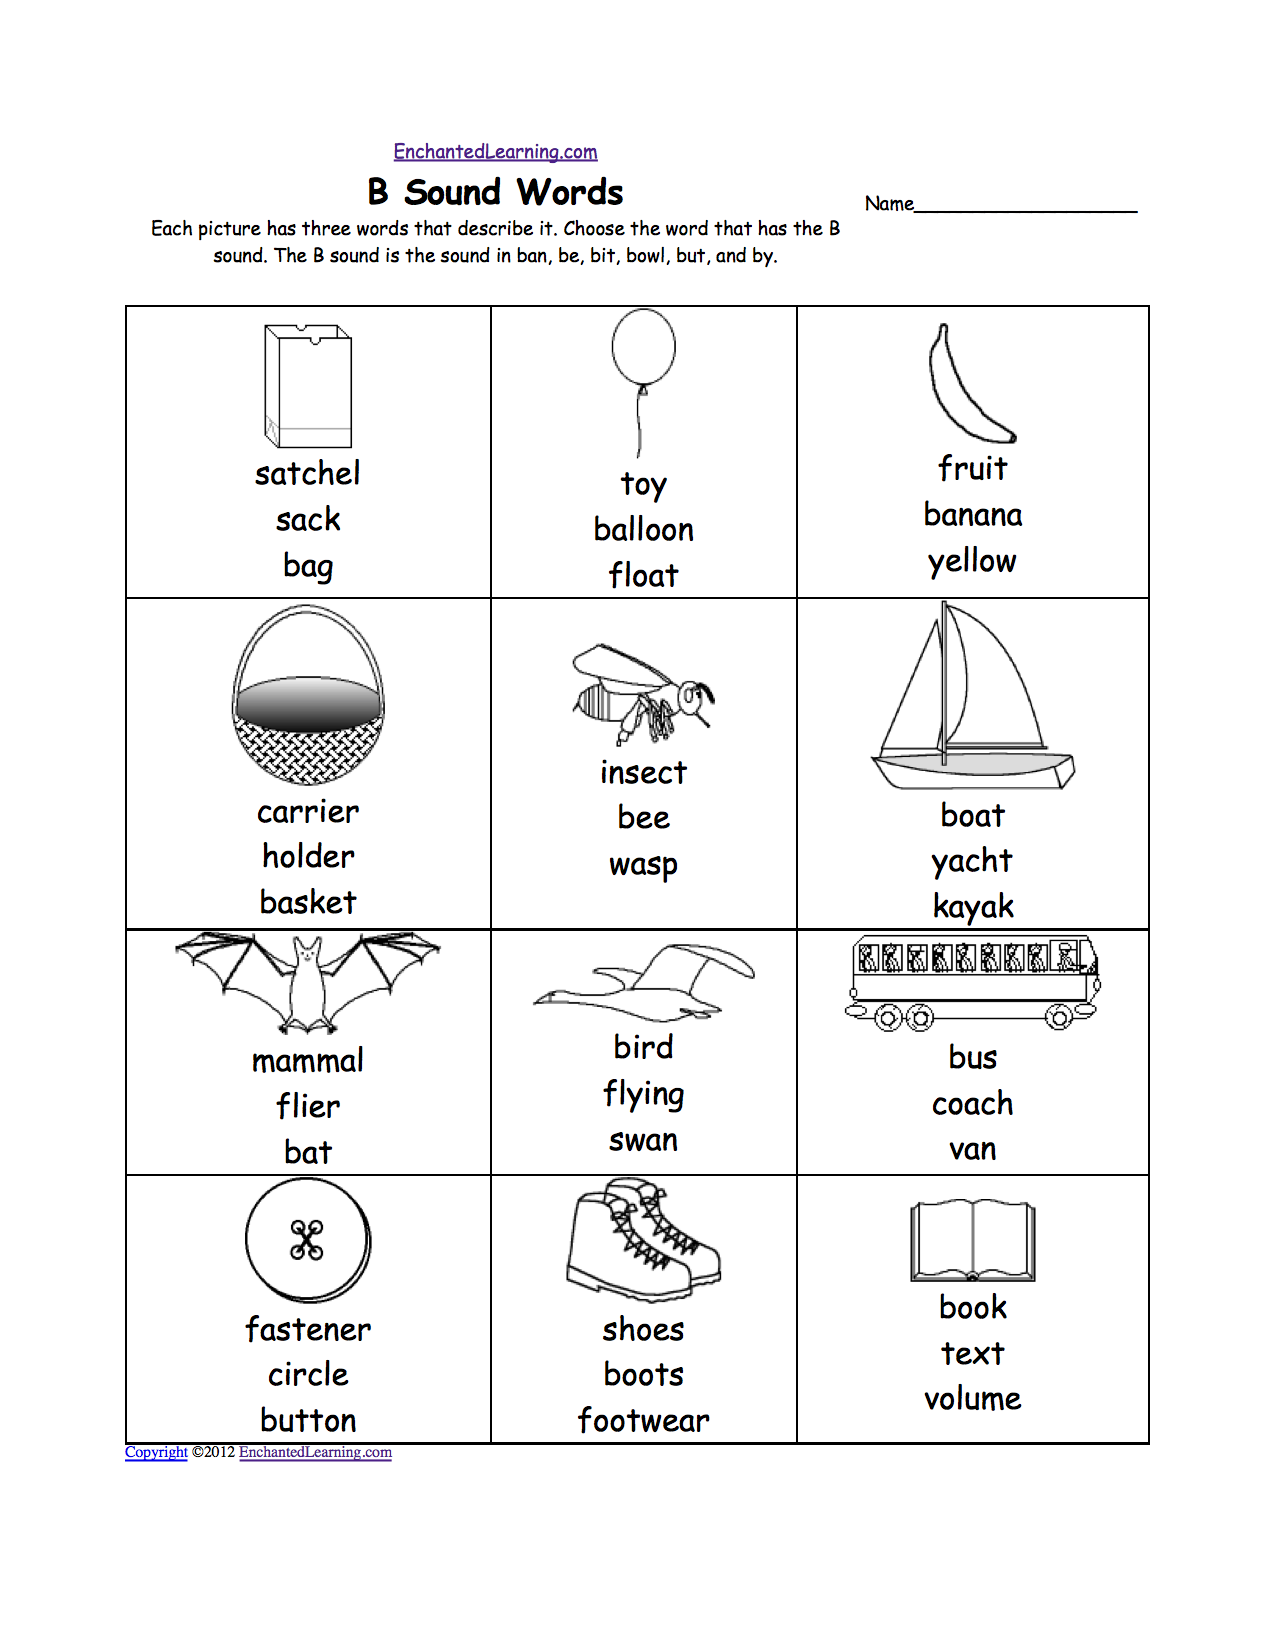 Proatmealus  Scenic Phonics Worksheets Multiple Choice Worksheets To Print  With Outstanding Quotbquot Sound Phonics Worksheet Multiple Choice Each Picture Has Three Words That Describe It Choose The Word That Has A Quotbquot Sound The Quotbquot Sound Is The Sound  With Extraordinary Food Chains Worksheet Also Solving Percent Problems Worksheet In Addition Rational Irrational Numbers Worksheet And Nd Grade Graphing Worksheets As Well As Butterfly Worksheet Additionally How To Manage Your Money Worksheets From Enchantedlearningcom With Proatmealus  Outstanding Phonics Worksheets Multiple Choice Worksheets To Print  With Extraordinary Quotbquot Sound Phonics Worksheet Multiple Choice Each Picture Has Three Words That Describe It Choose The Word That Has A Quotbquot Sound The Quotbquot Sound Is The Sound  And Scenic Food Chains Worksheet Also Solving Percent Problems Worksheet In Addition Rational Irrational Numbers Worksheet From Enchantedlearningcom